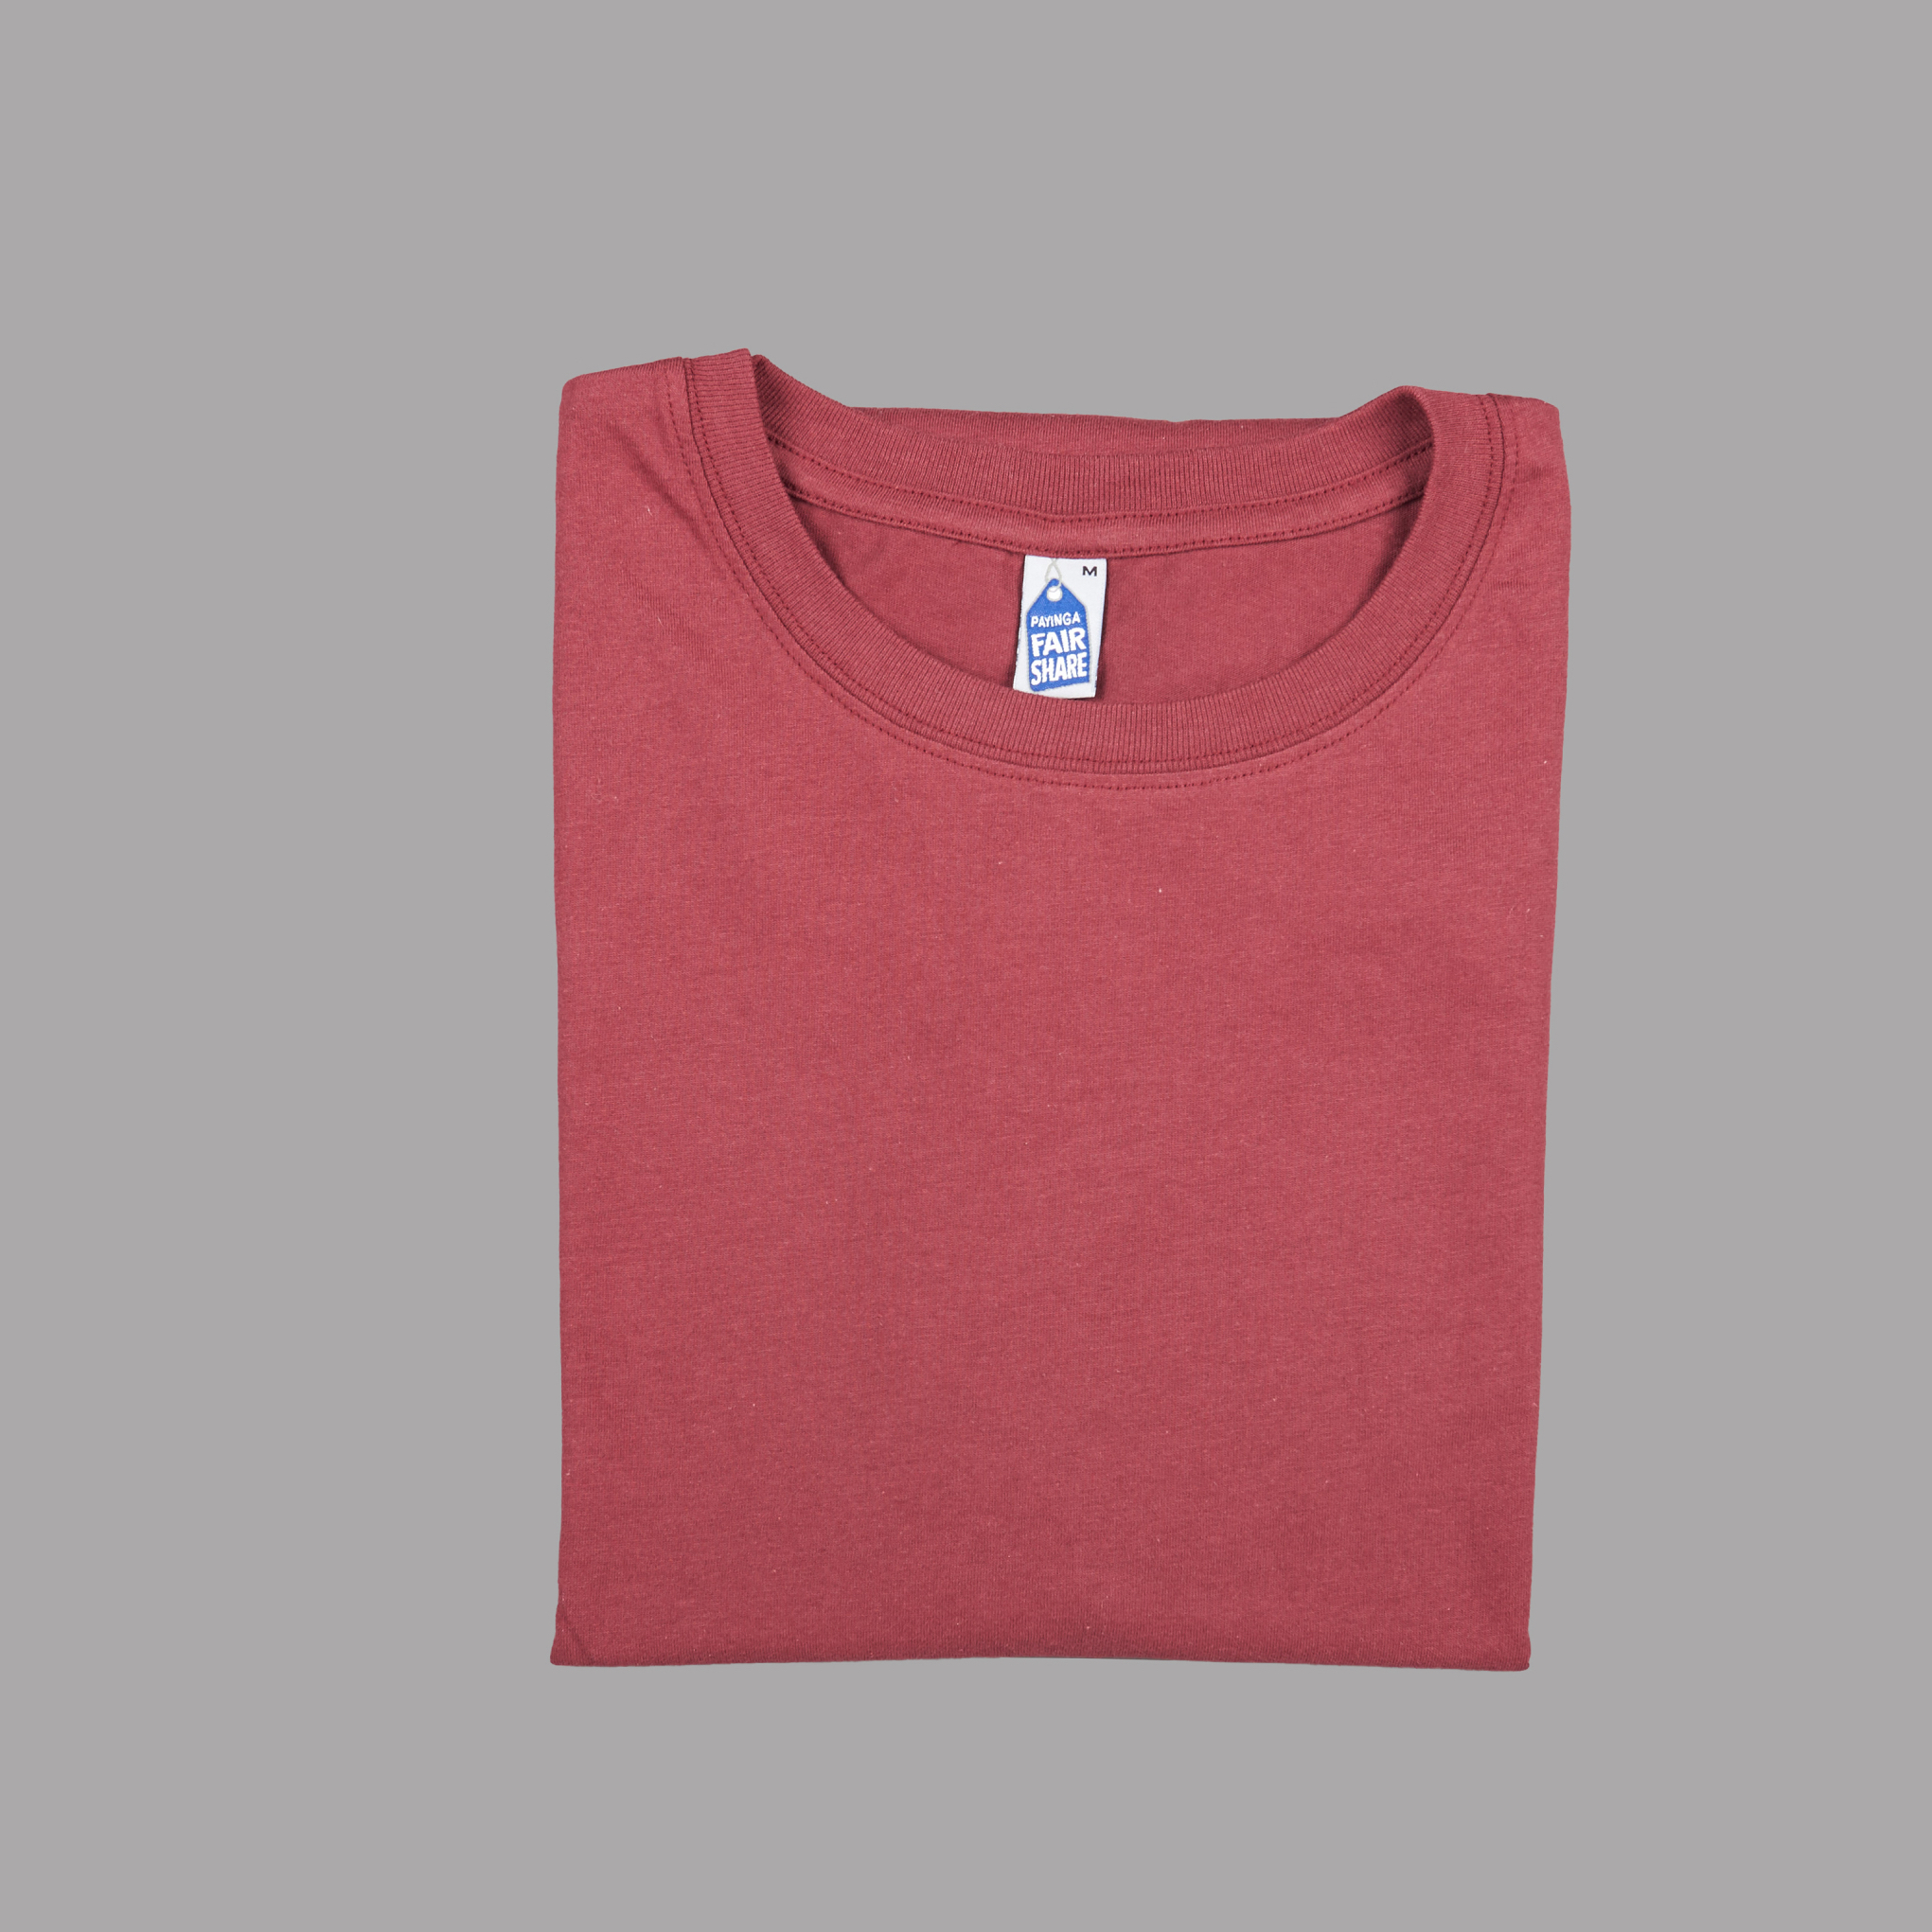 Folded View Burgundy t-shirt from CDUK